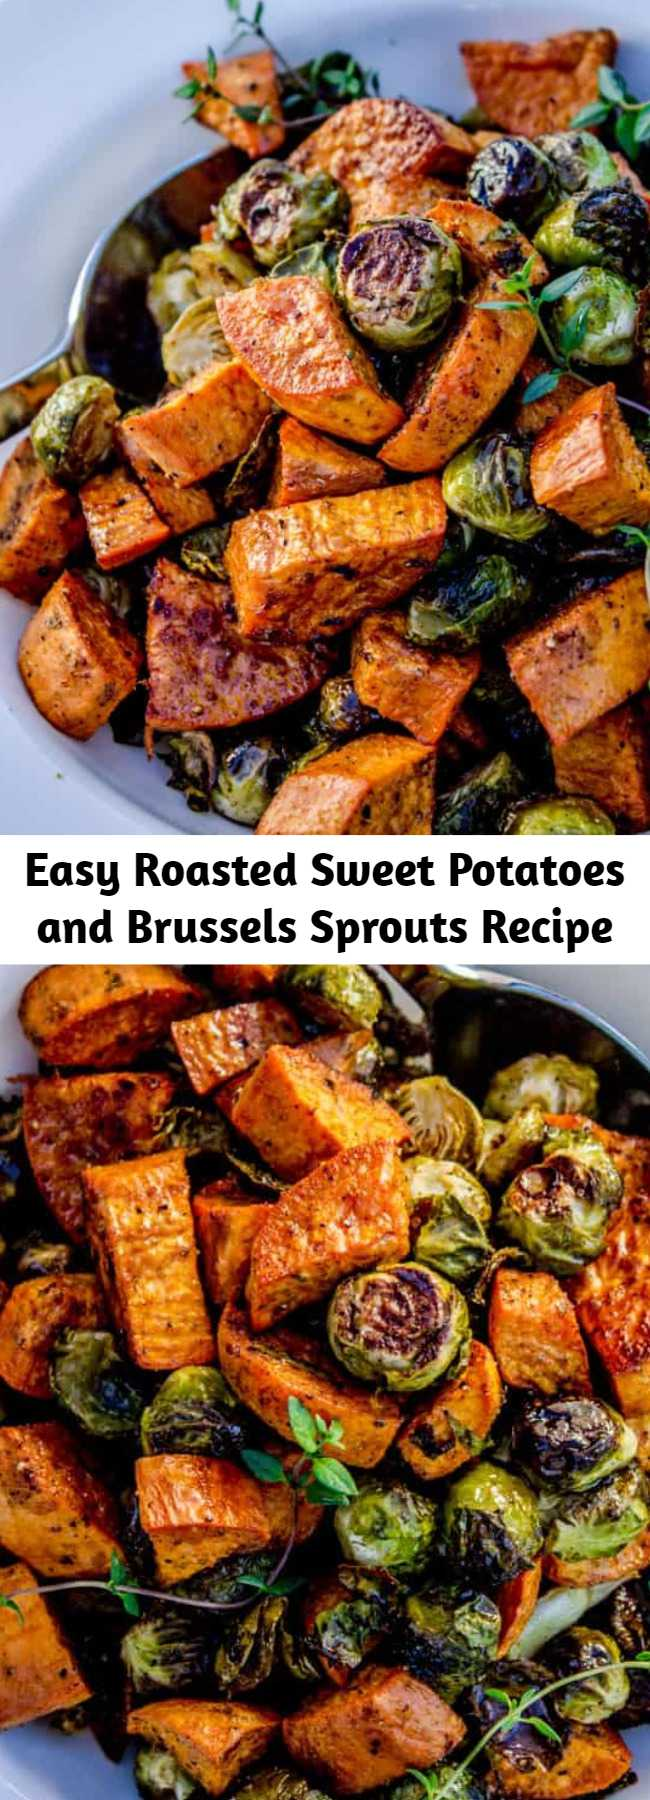 Easy Roasted Sweet Potatoes and Brussels Sprouts Recipe - Roasted vegetables (like these Brussels sprouts and sweet potatoes) are superior in almost every way; it's a fact. But they take up valuable oven space on holidays. Make them ahead of time and reheat!  Save on time and stress.